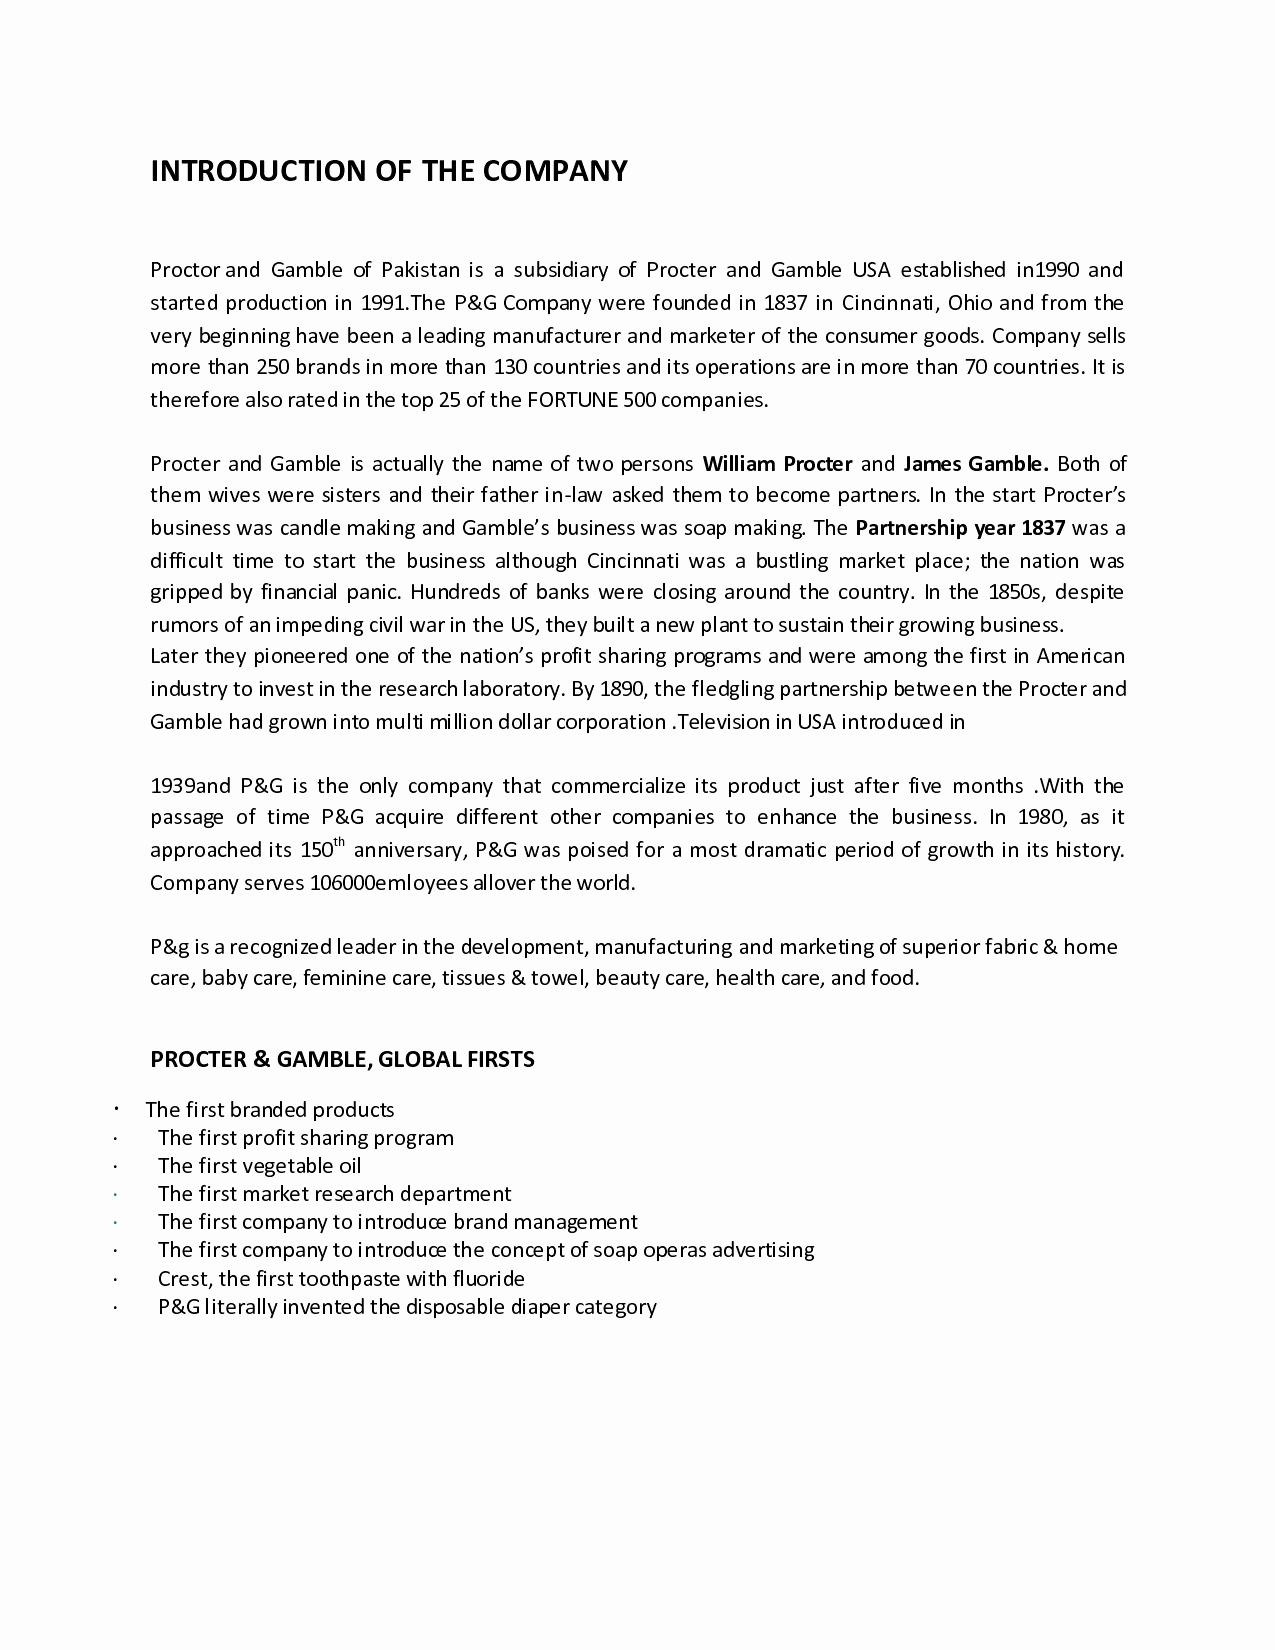 Excellent Cover Letter Template - Excellent Cover Letter Examples Luxury New Sample Cover Letter